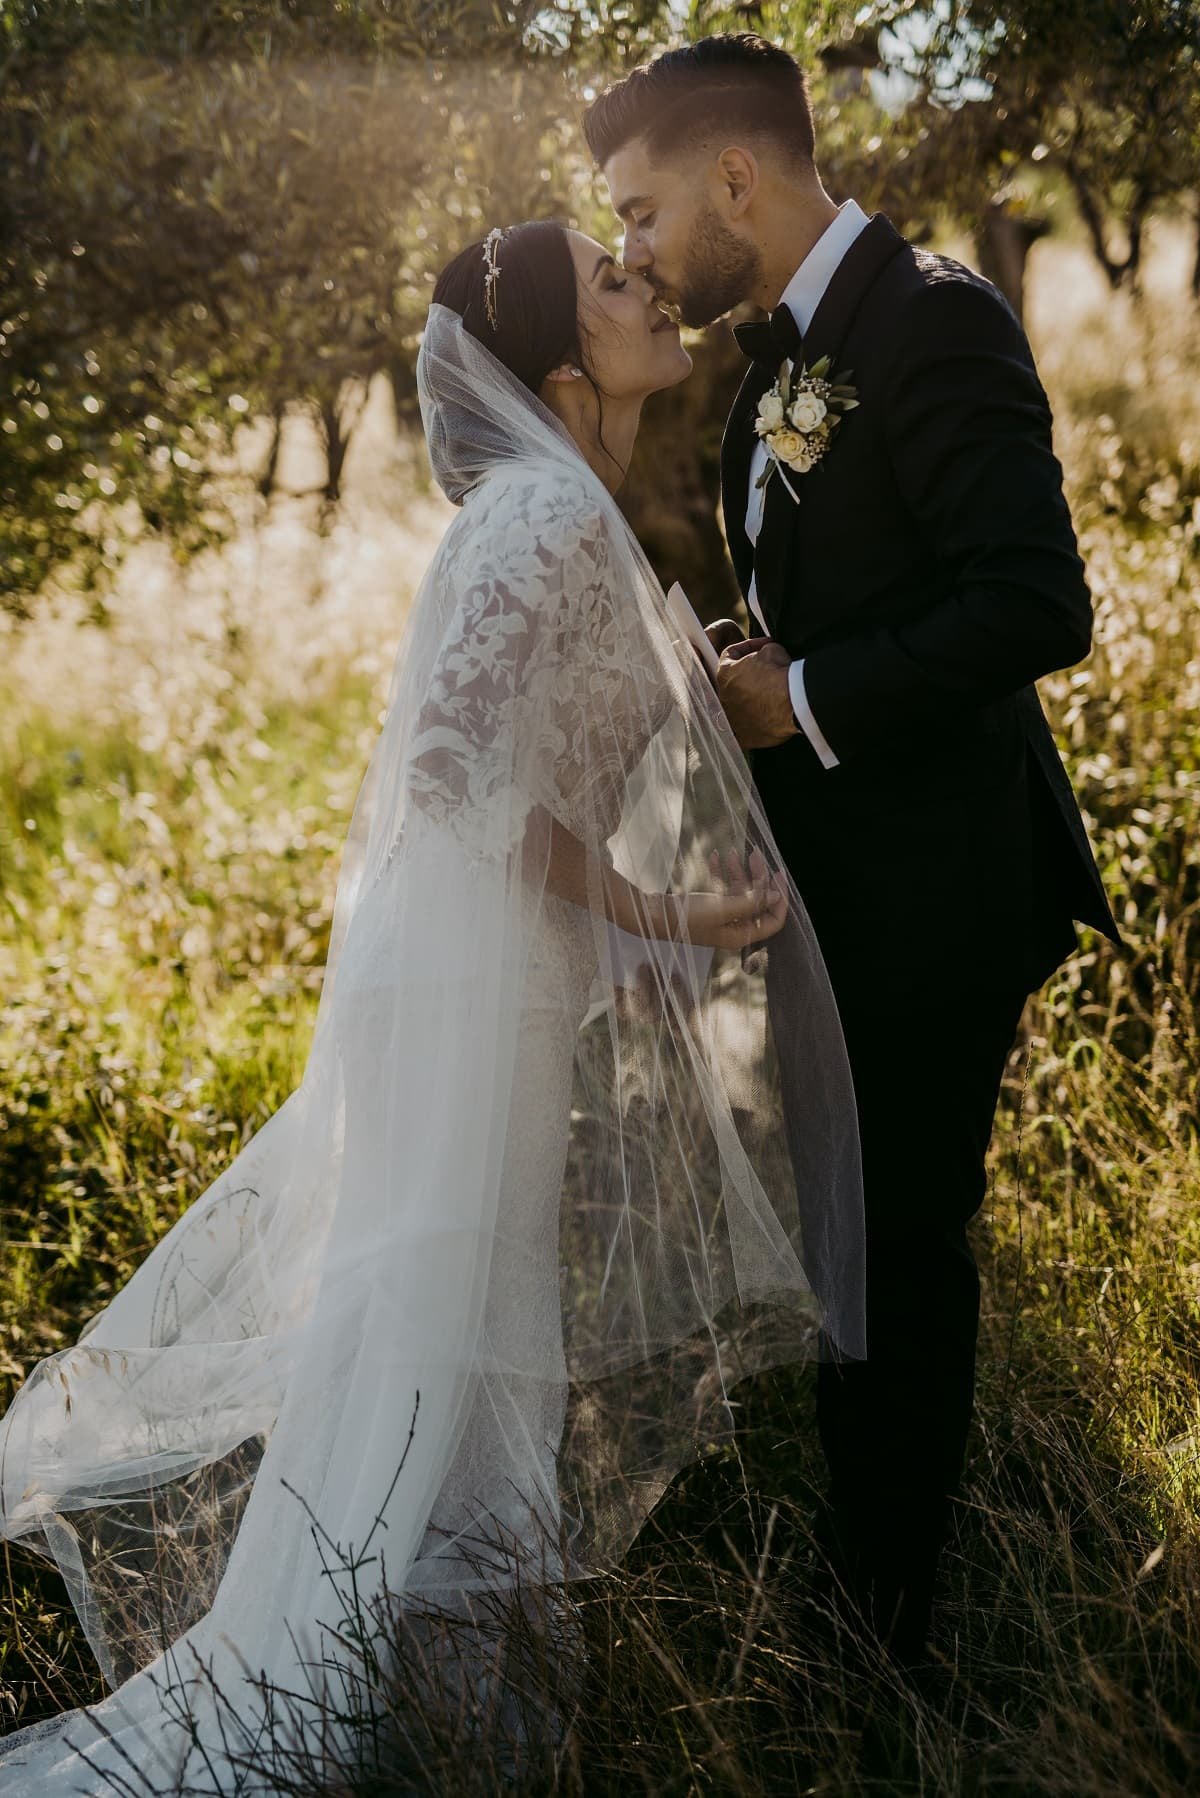 WTuscany Events Destination Wedding Planners Italy, Spain & Ibiza - member of the Destination Wedding Directory by Weddings Abroad Guide - Vanessa & David